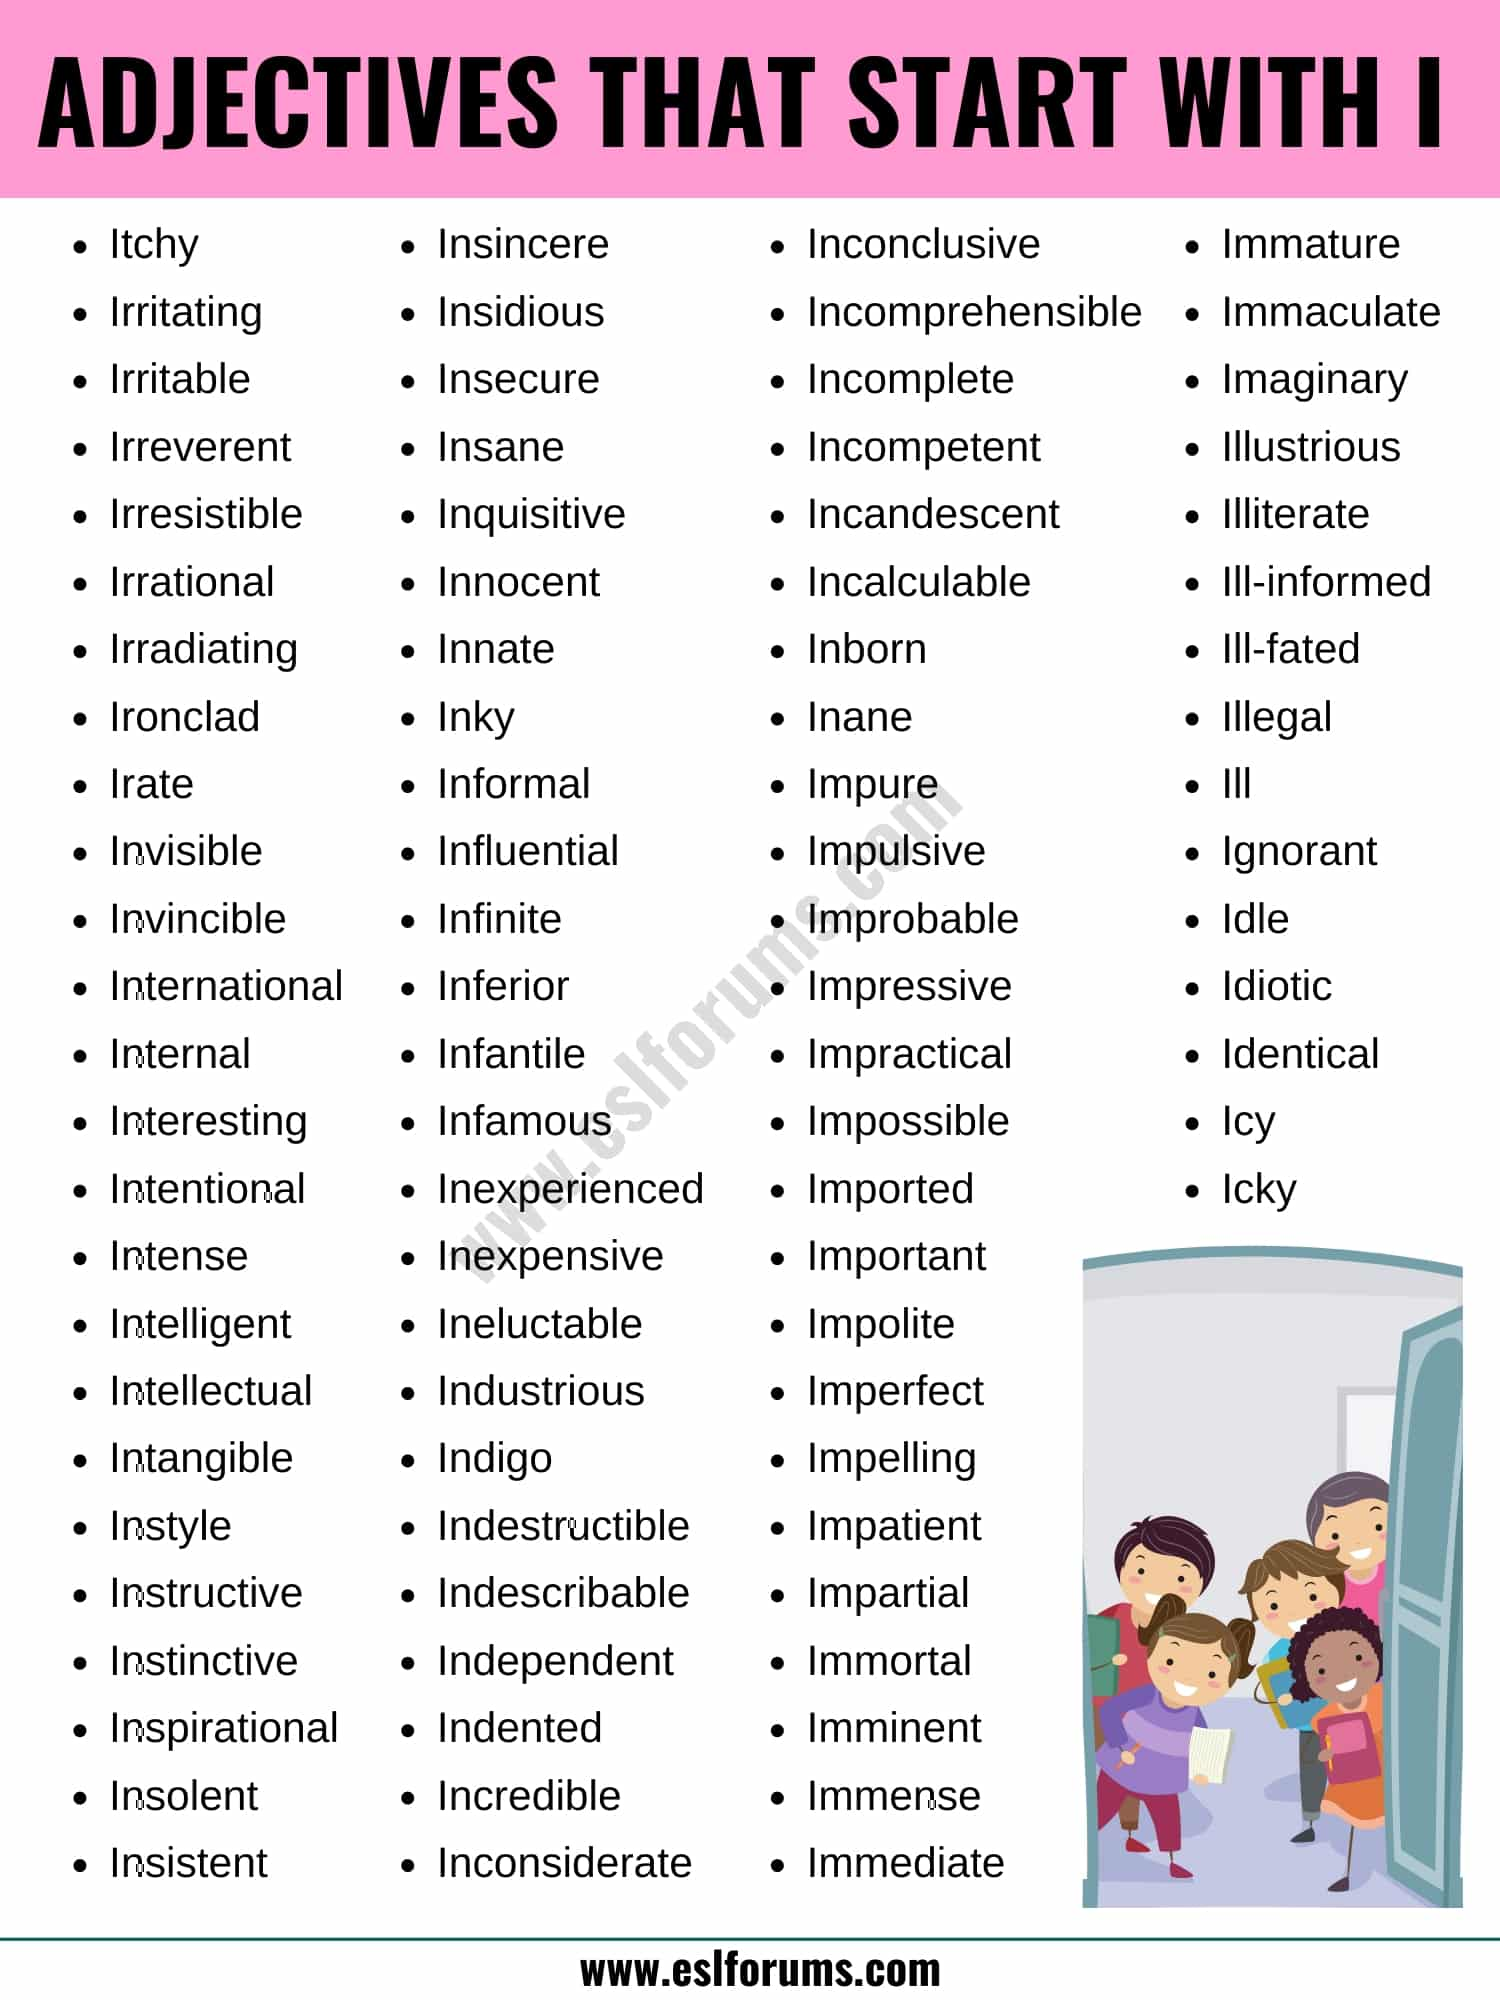 Adjectives that Start with I: List of 90 Adjectives Starting with I in English